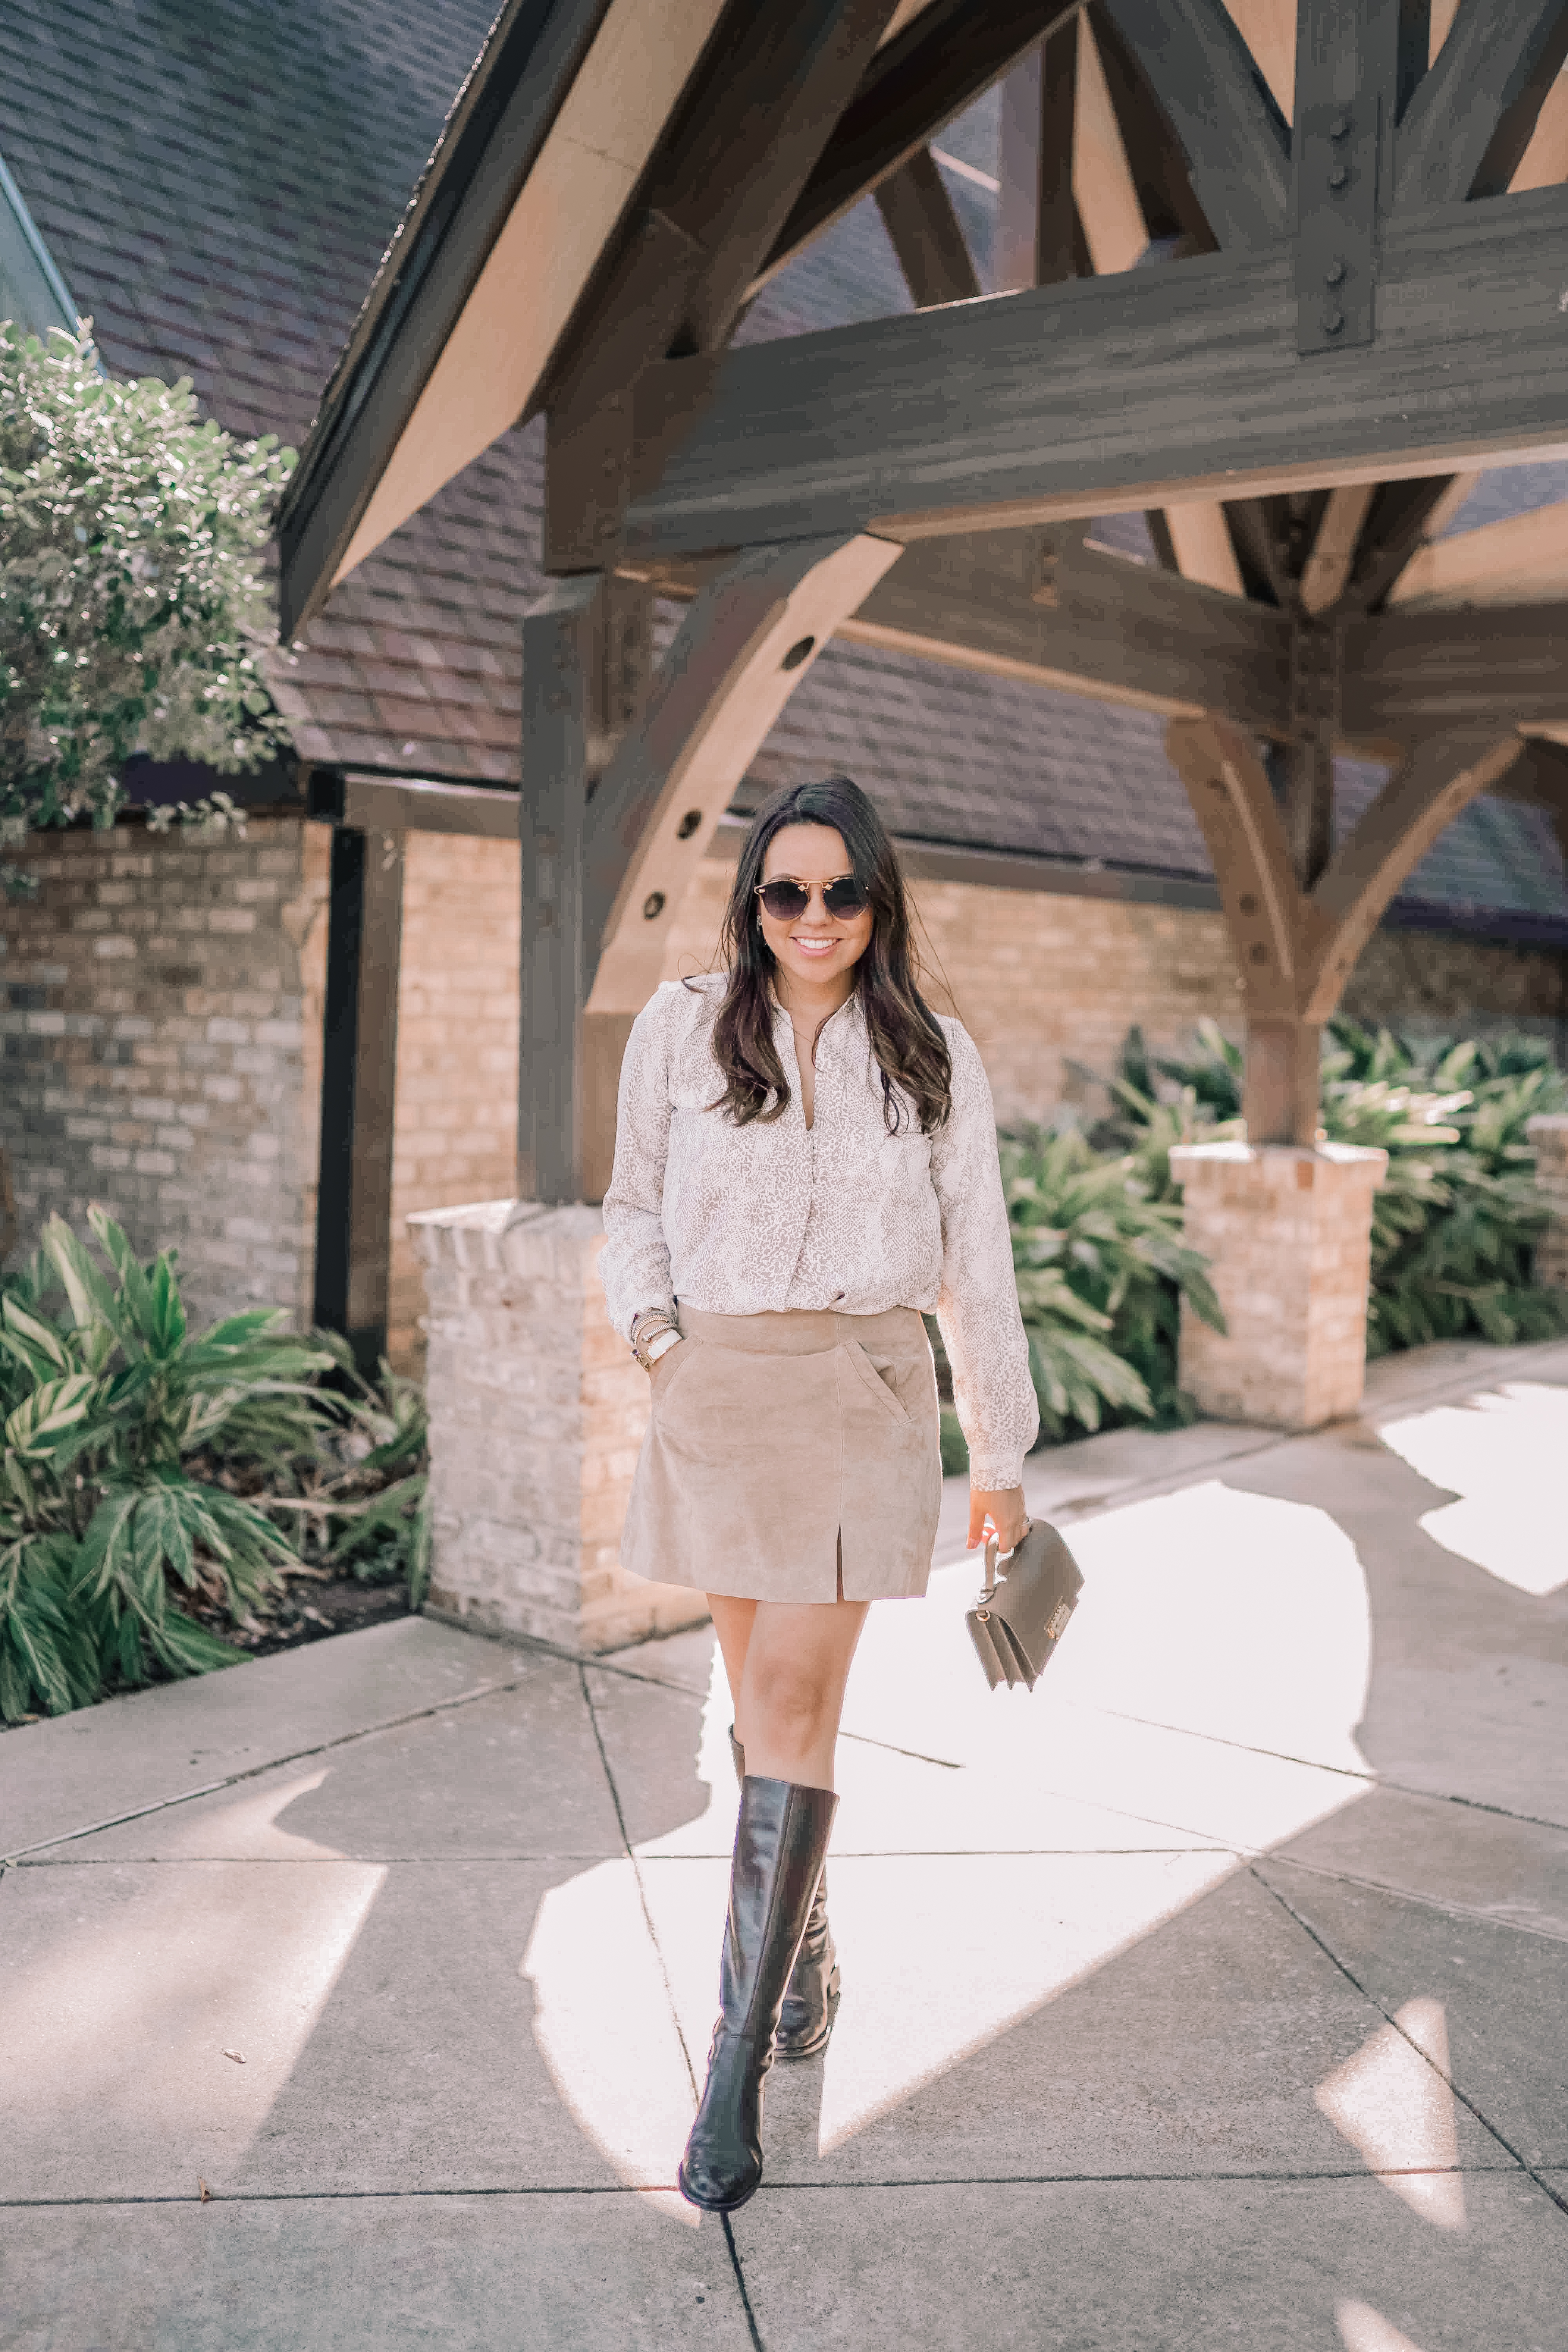 Are you loving the snake print trend this season? Fashion blogger Alex teams up with her friends to share 3 different ways to wear snake print!